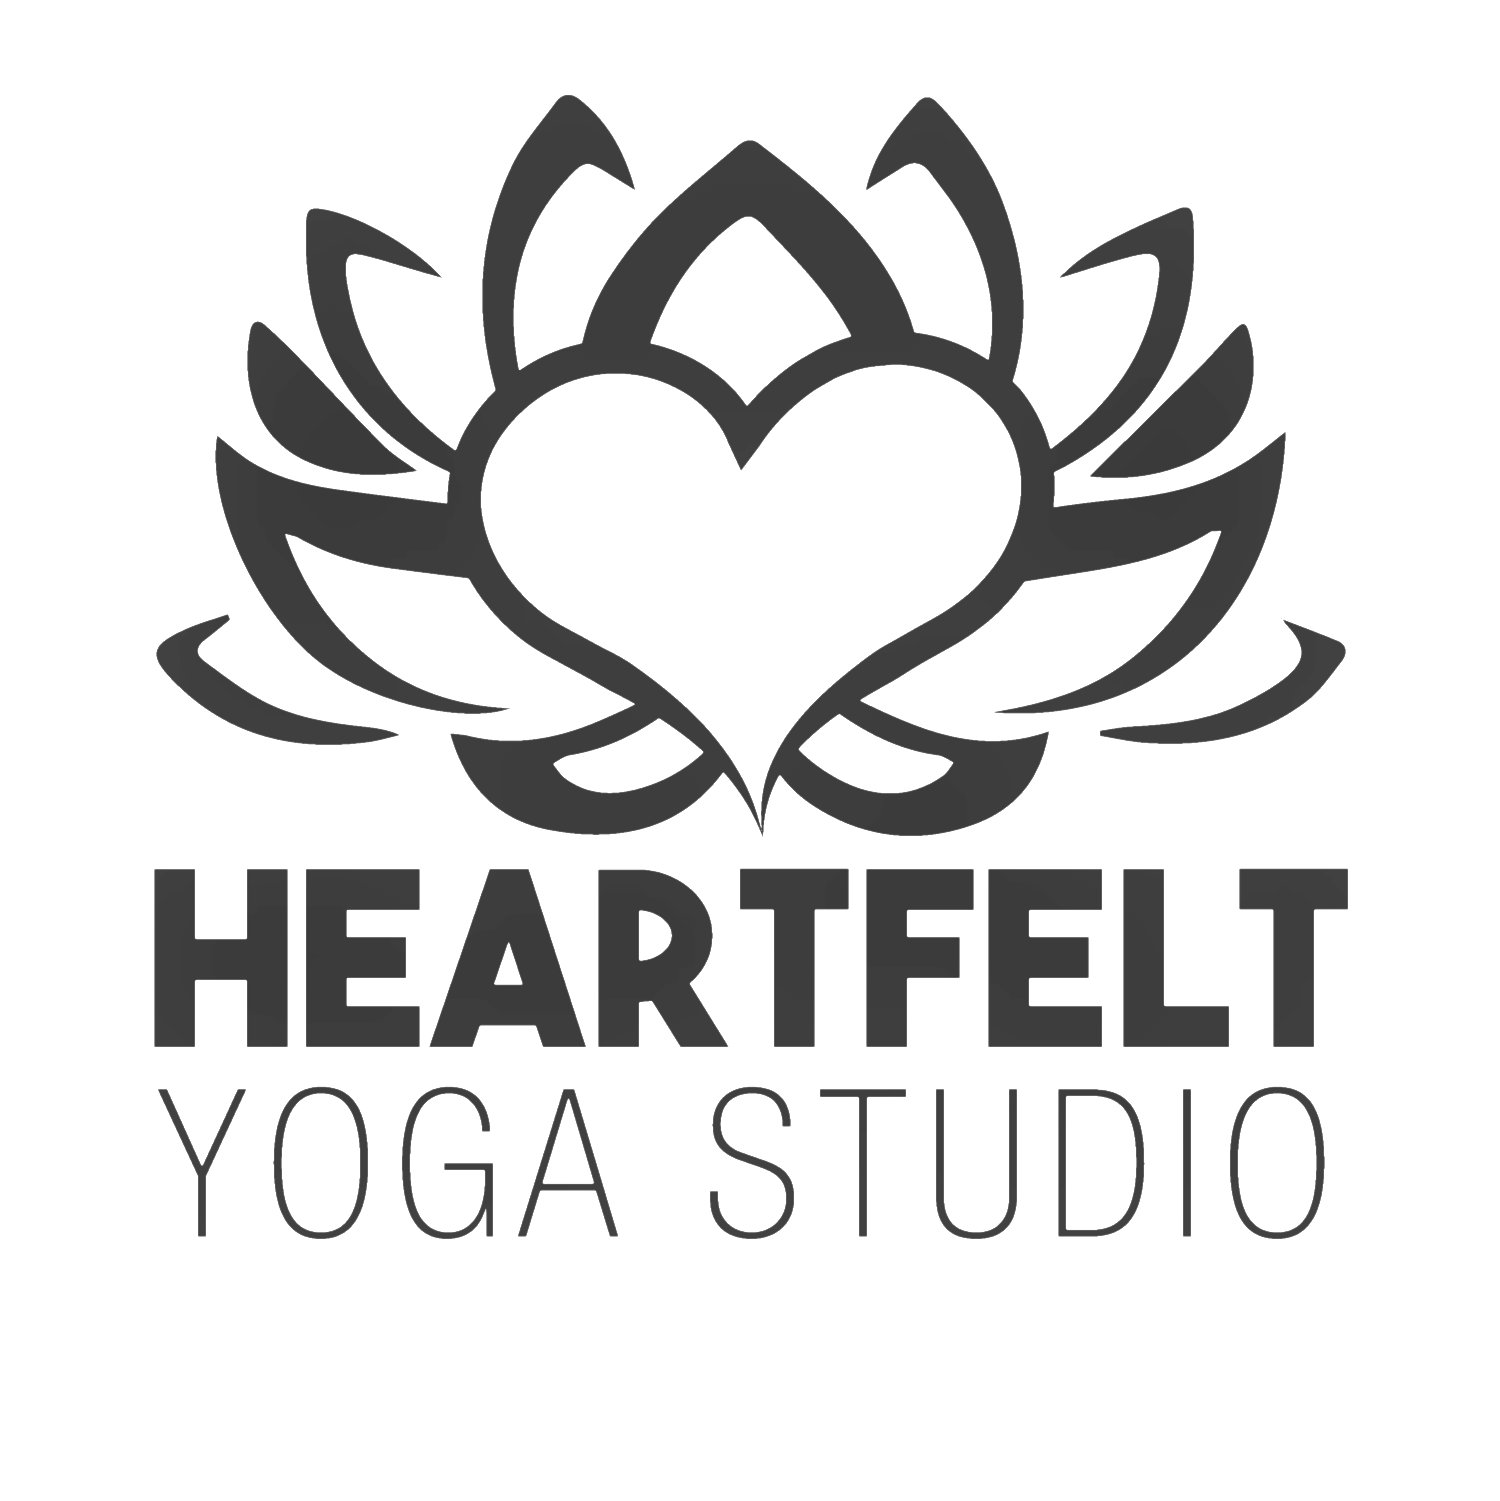 Heartfelt Yoga Studio - Columbus Ohio